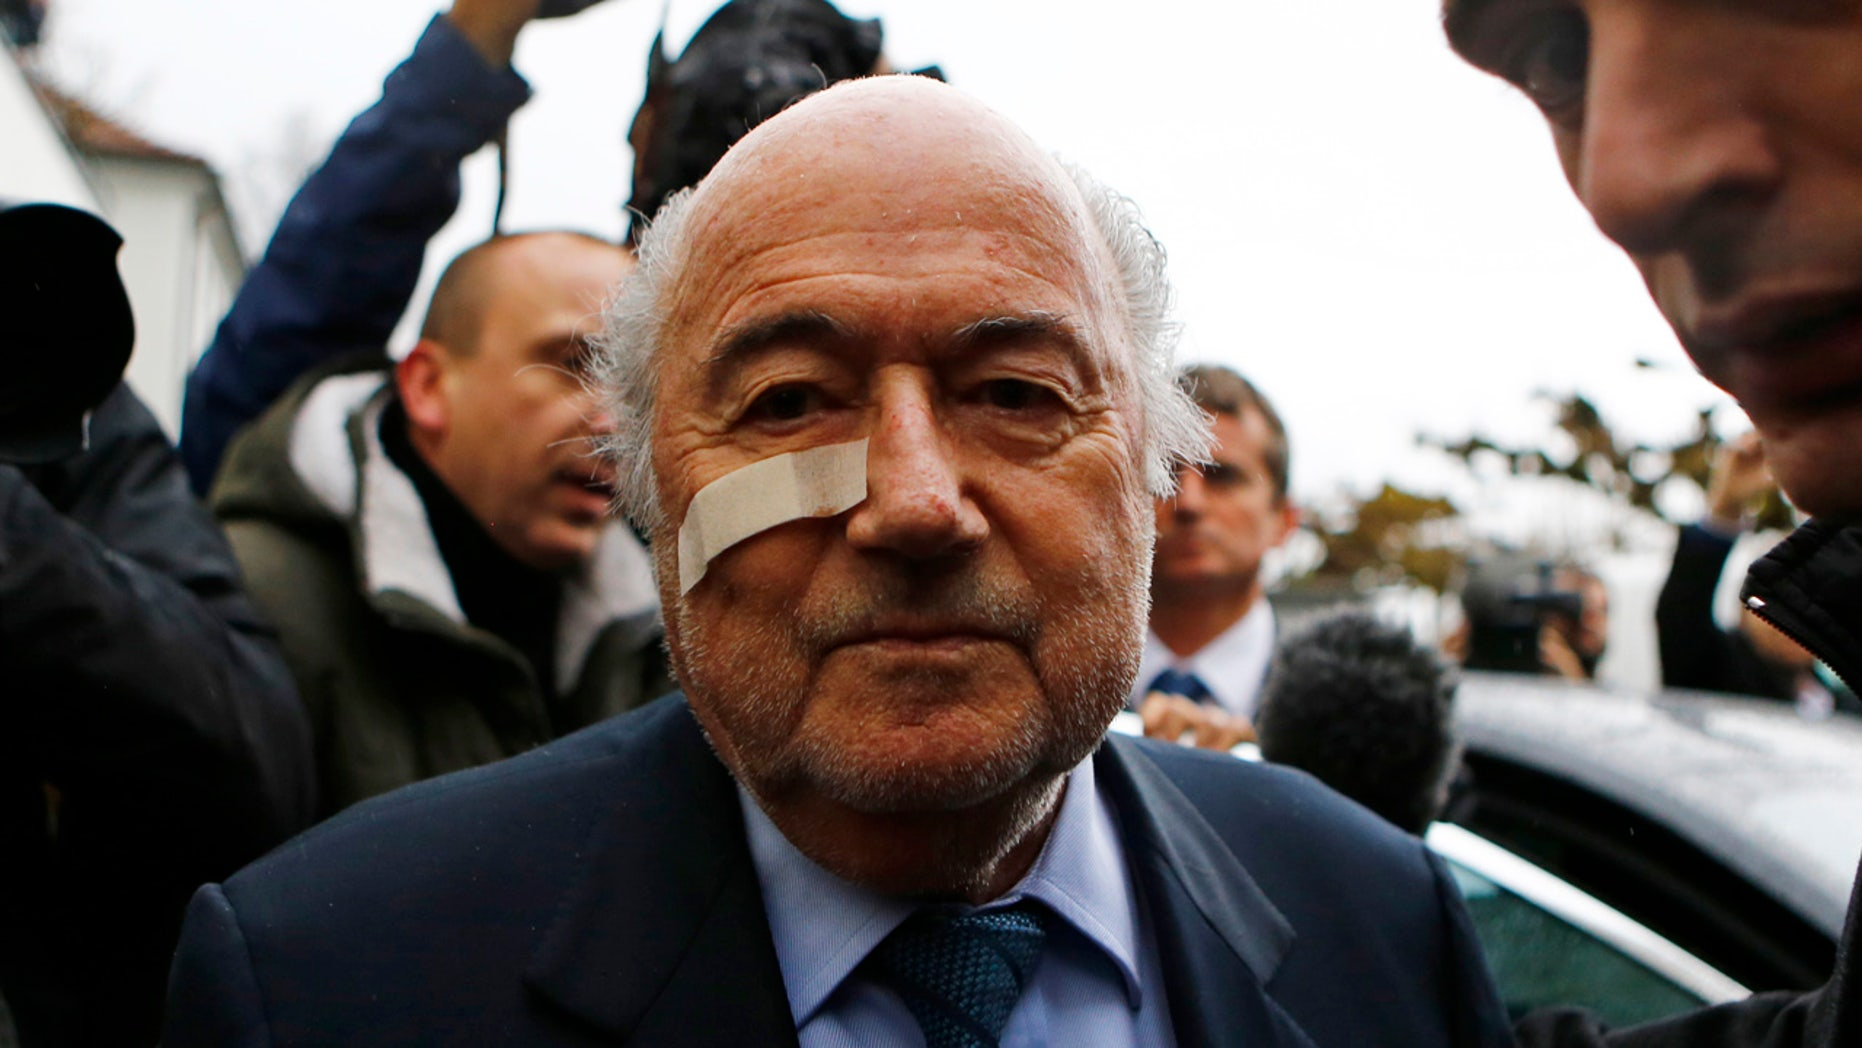 Suspended FIFA President Sepp Blatter arrives for a news conference in Zurich, Switzerland,  Monday, Dec. 21, 2015 after he has been banned for 8 years from all football related activities. (AP Photo/Matthias Schrader)